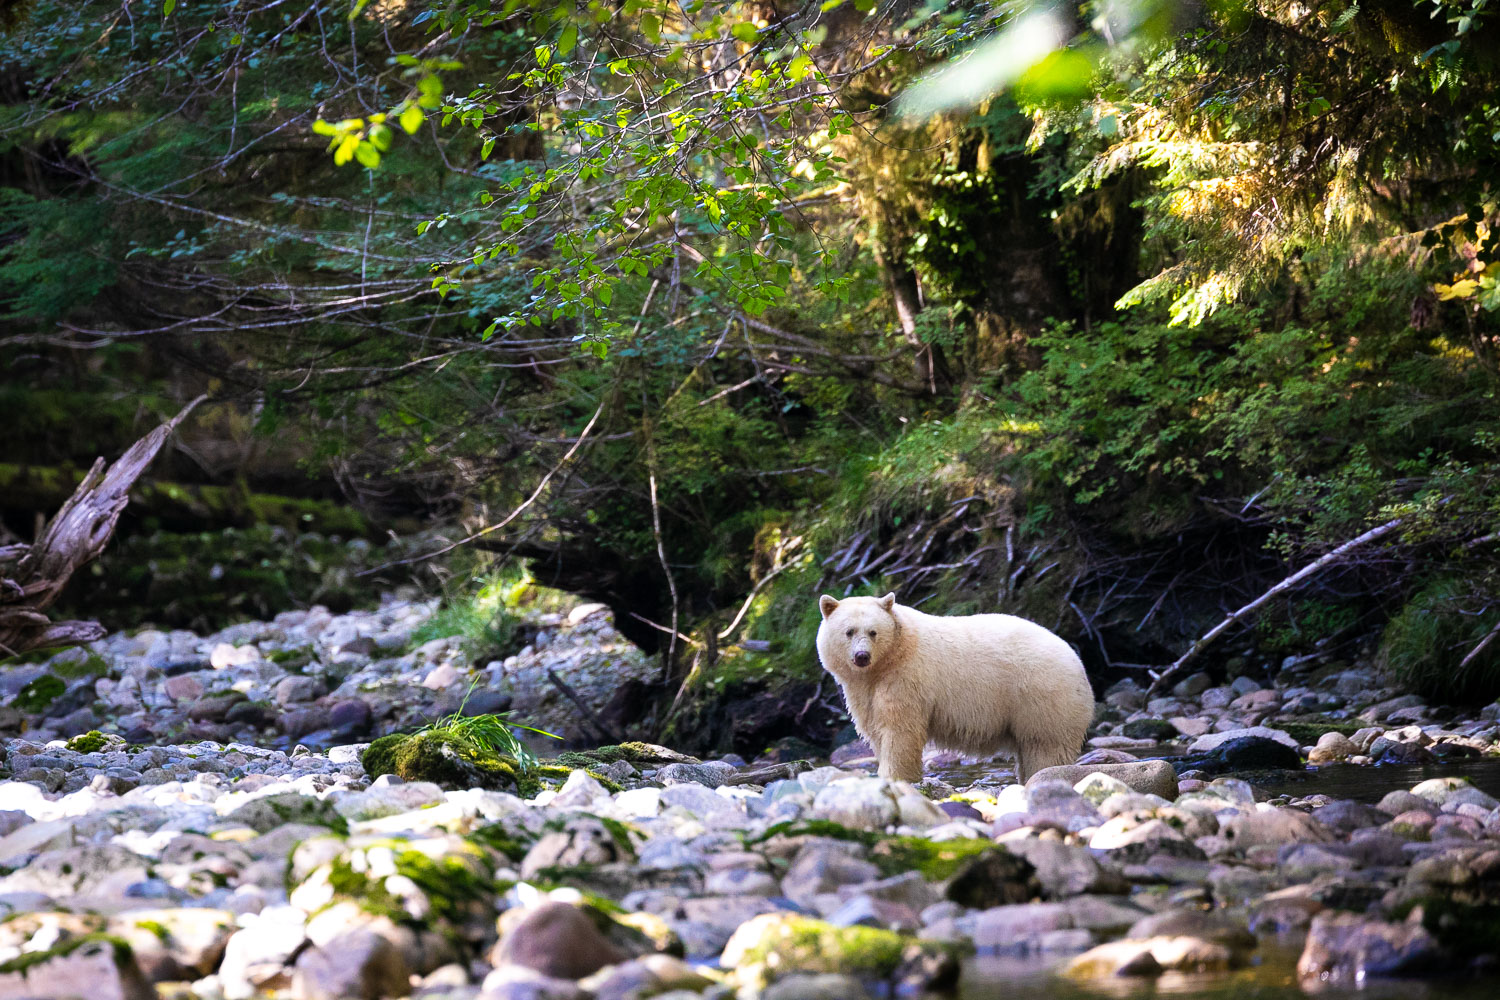 Drawn to the river by the smell of spawning salmon, a Spirit Bear named Warrior pauses momentarily in a sun-dappled creek before chasing after her lunch. Spirit Bears are not an albino but actually a white variant of a black bear and only a few hundred are thought to exist on Earth. Patience, local knowledge, and a lot of luck are the most important ingredients when hoping to view one of the world's rarest animals. Thankfully, legendary Gitga'at bear guide, Marven Robinson, helped us to fulfill our dreams on this trip.